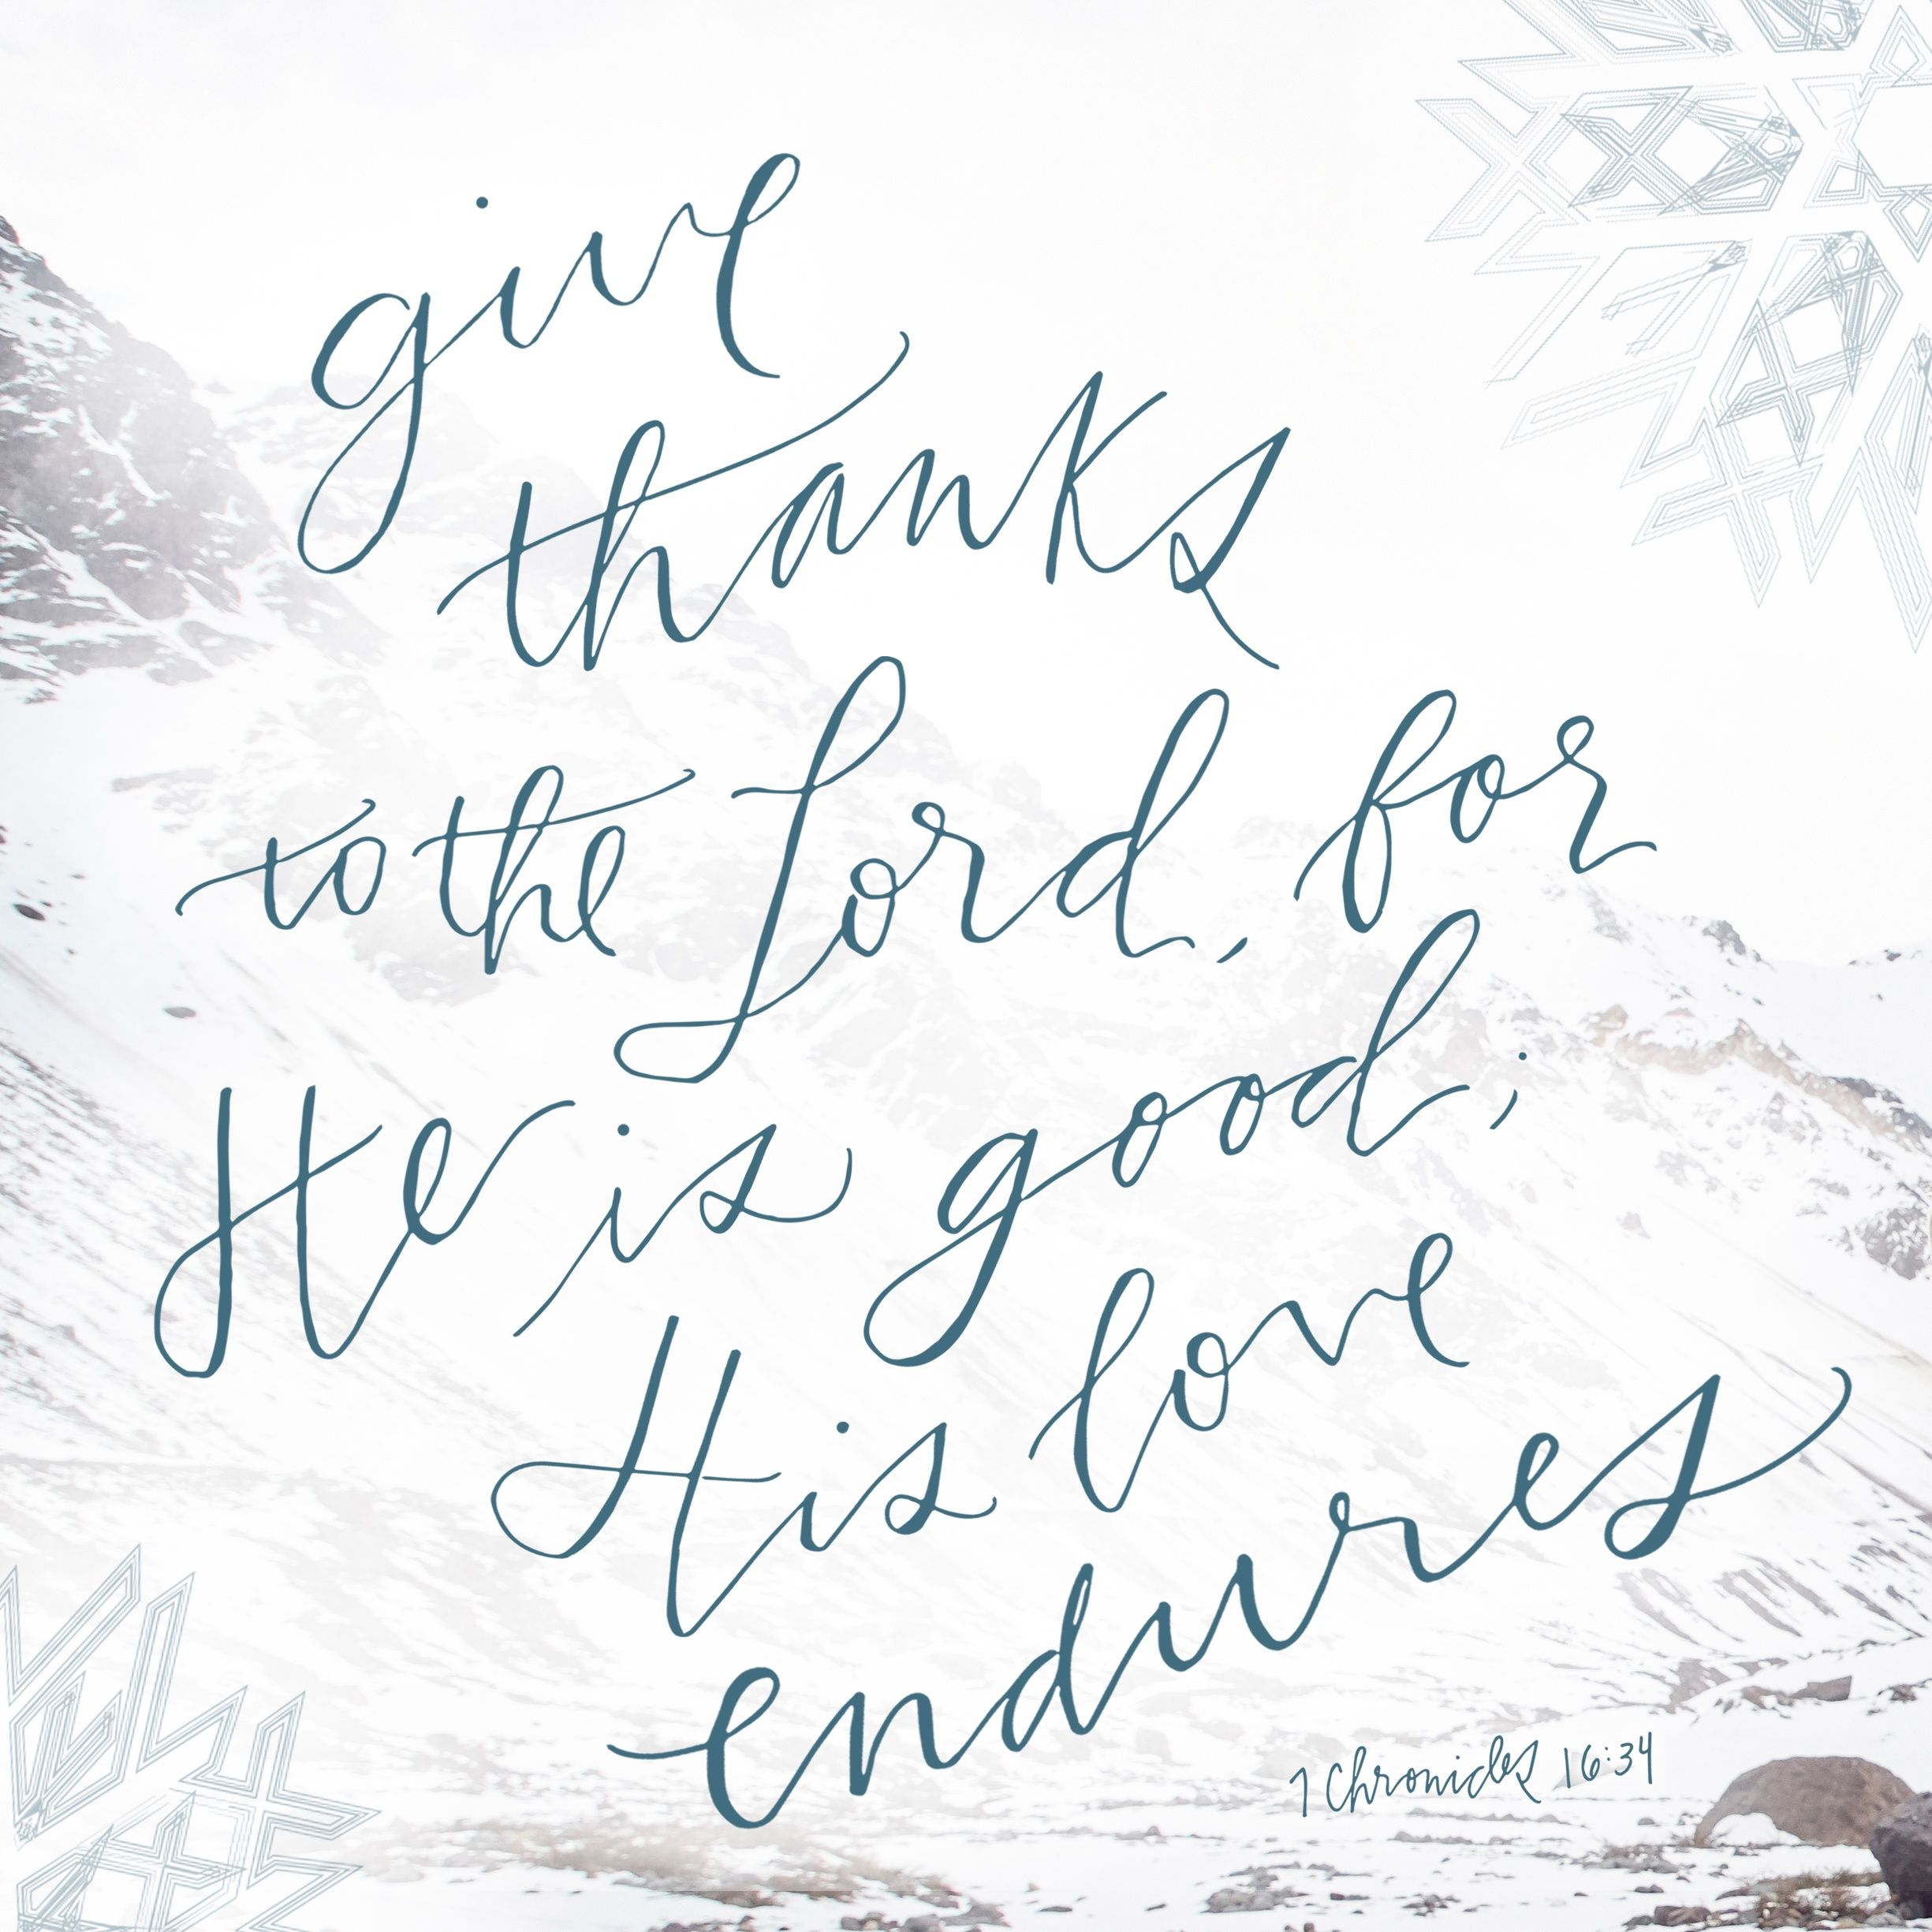 Her Likes This: Give Thanks To The Lord For He Is Good Verse.